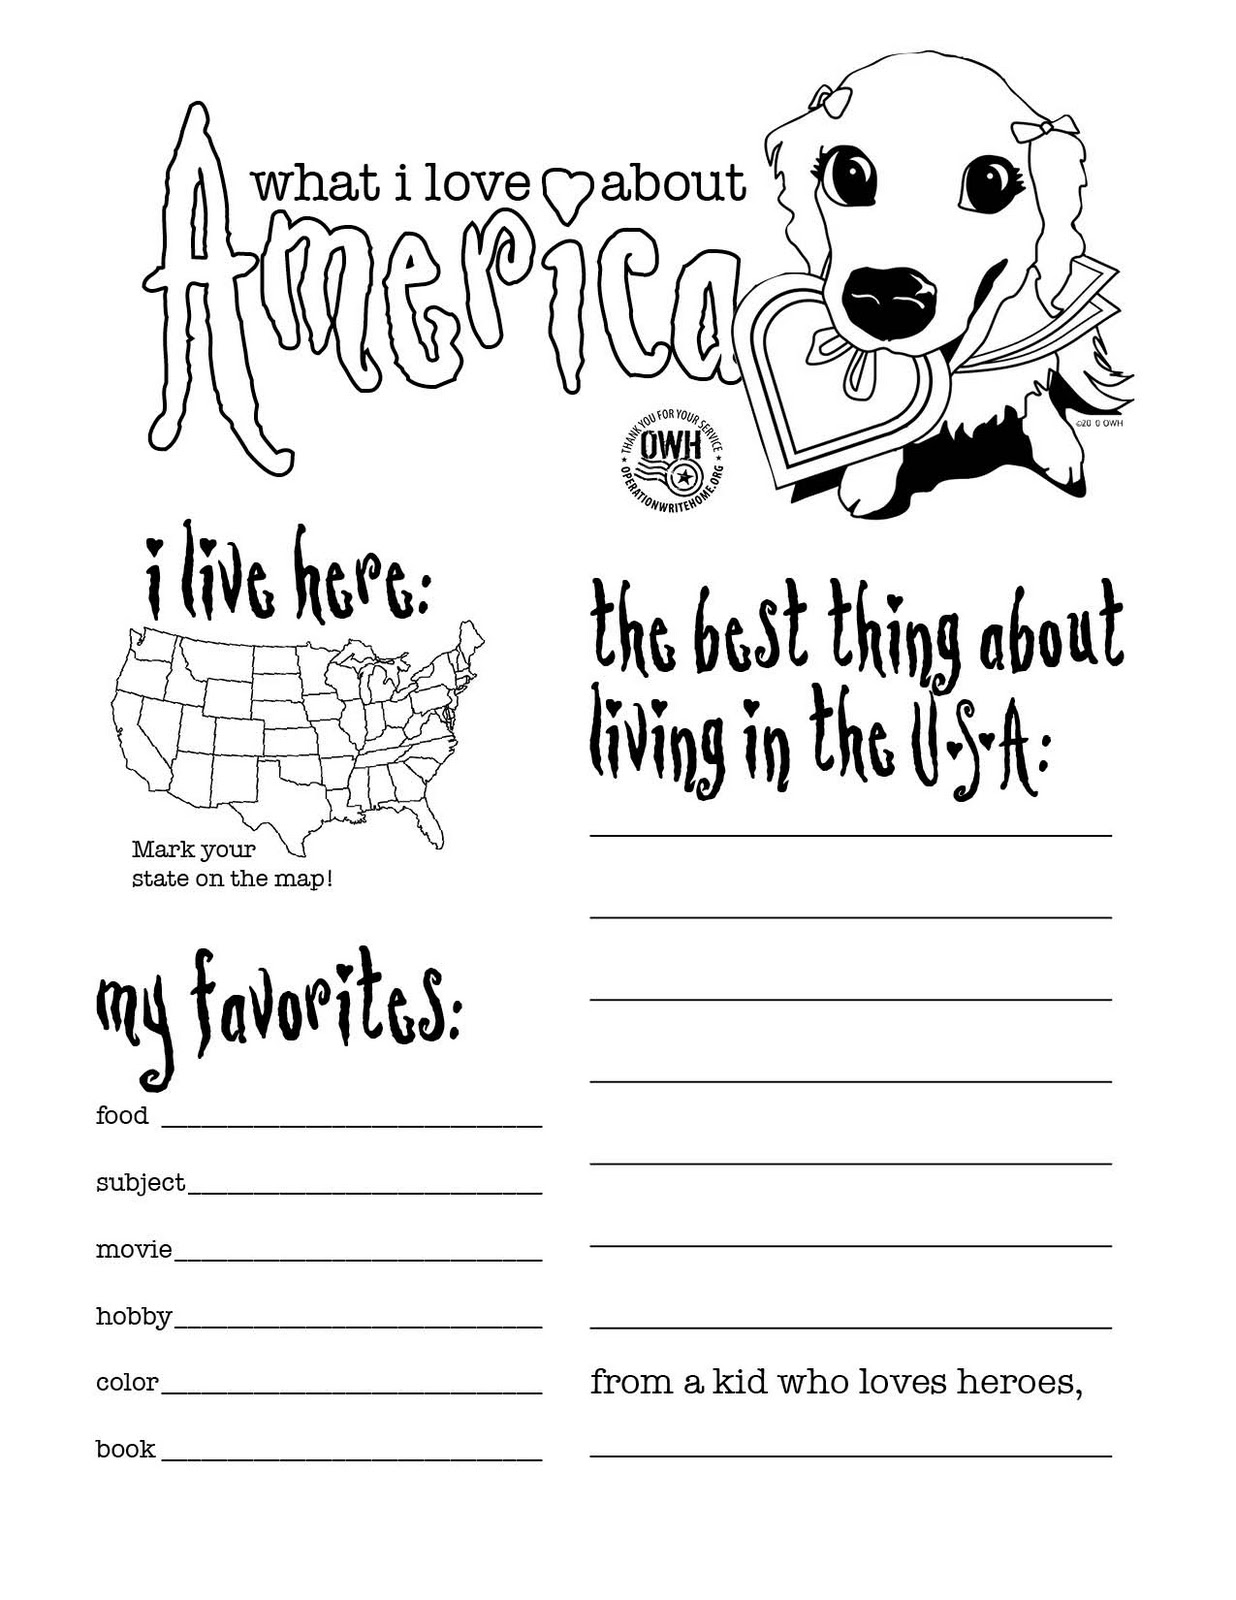 Homefront Blog: OWH Coloring pages - the whole collection!